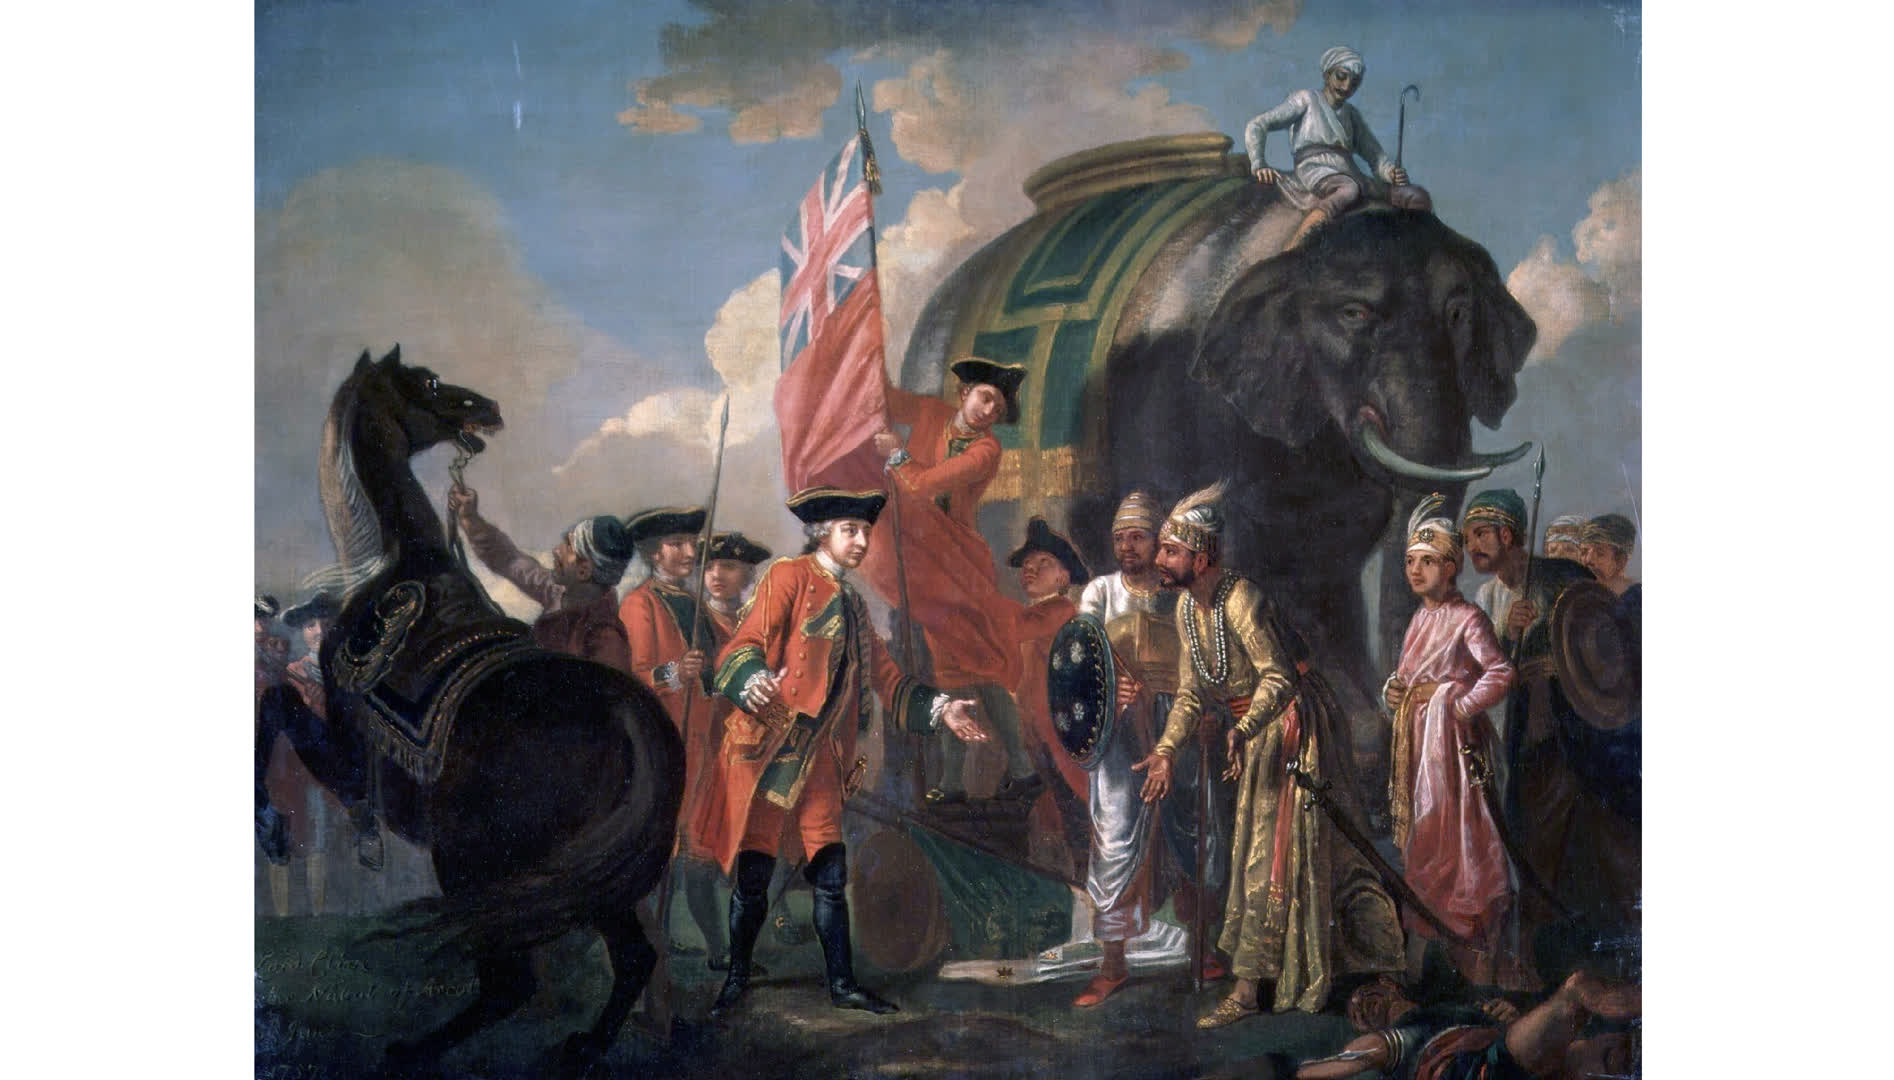 The Real 'Heroes' of the Battle of Plassey